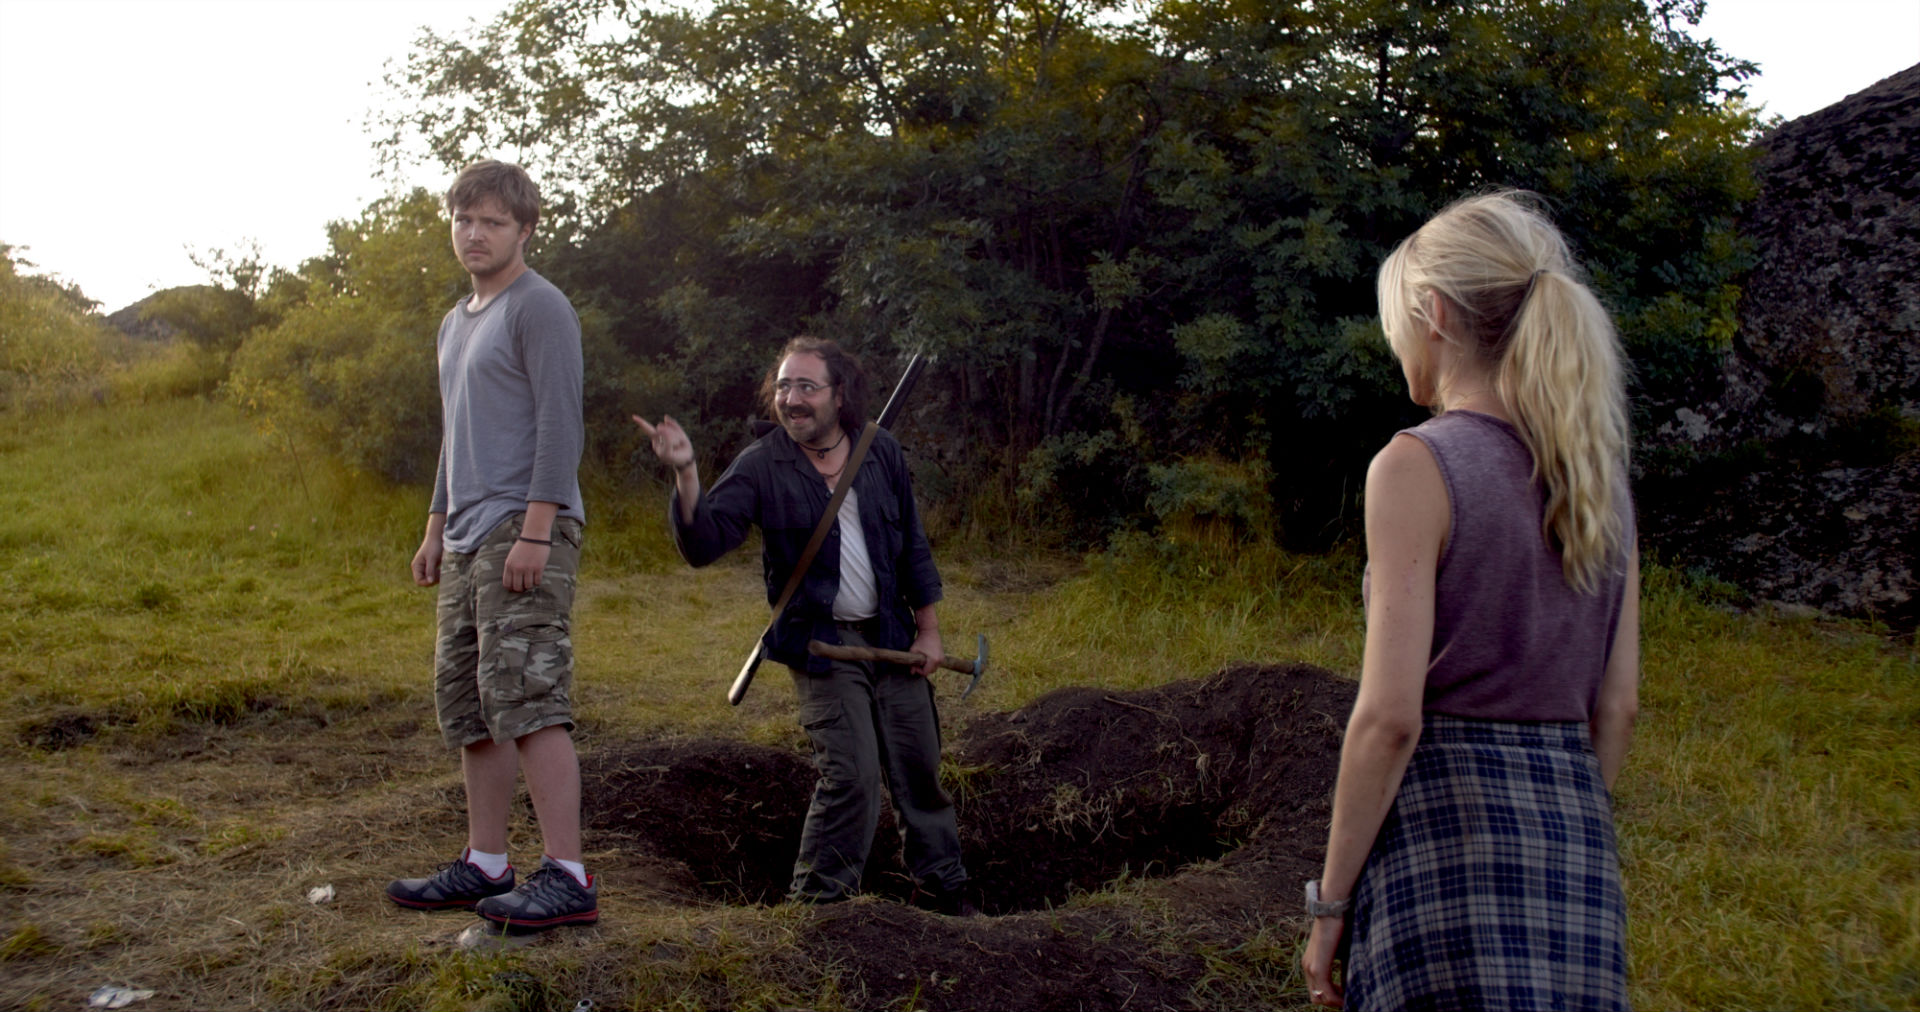 (l to r) Sterling Knight stands on the mind while Kote Tolordava taunts from the hole and girlfriend Spencer Locke watches on in Landmine Goes Click (2015)